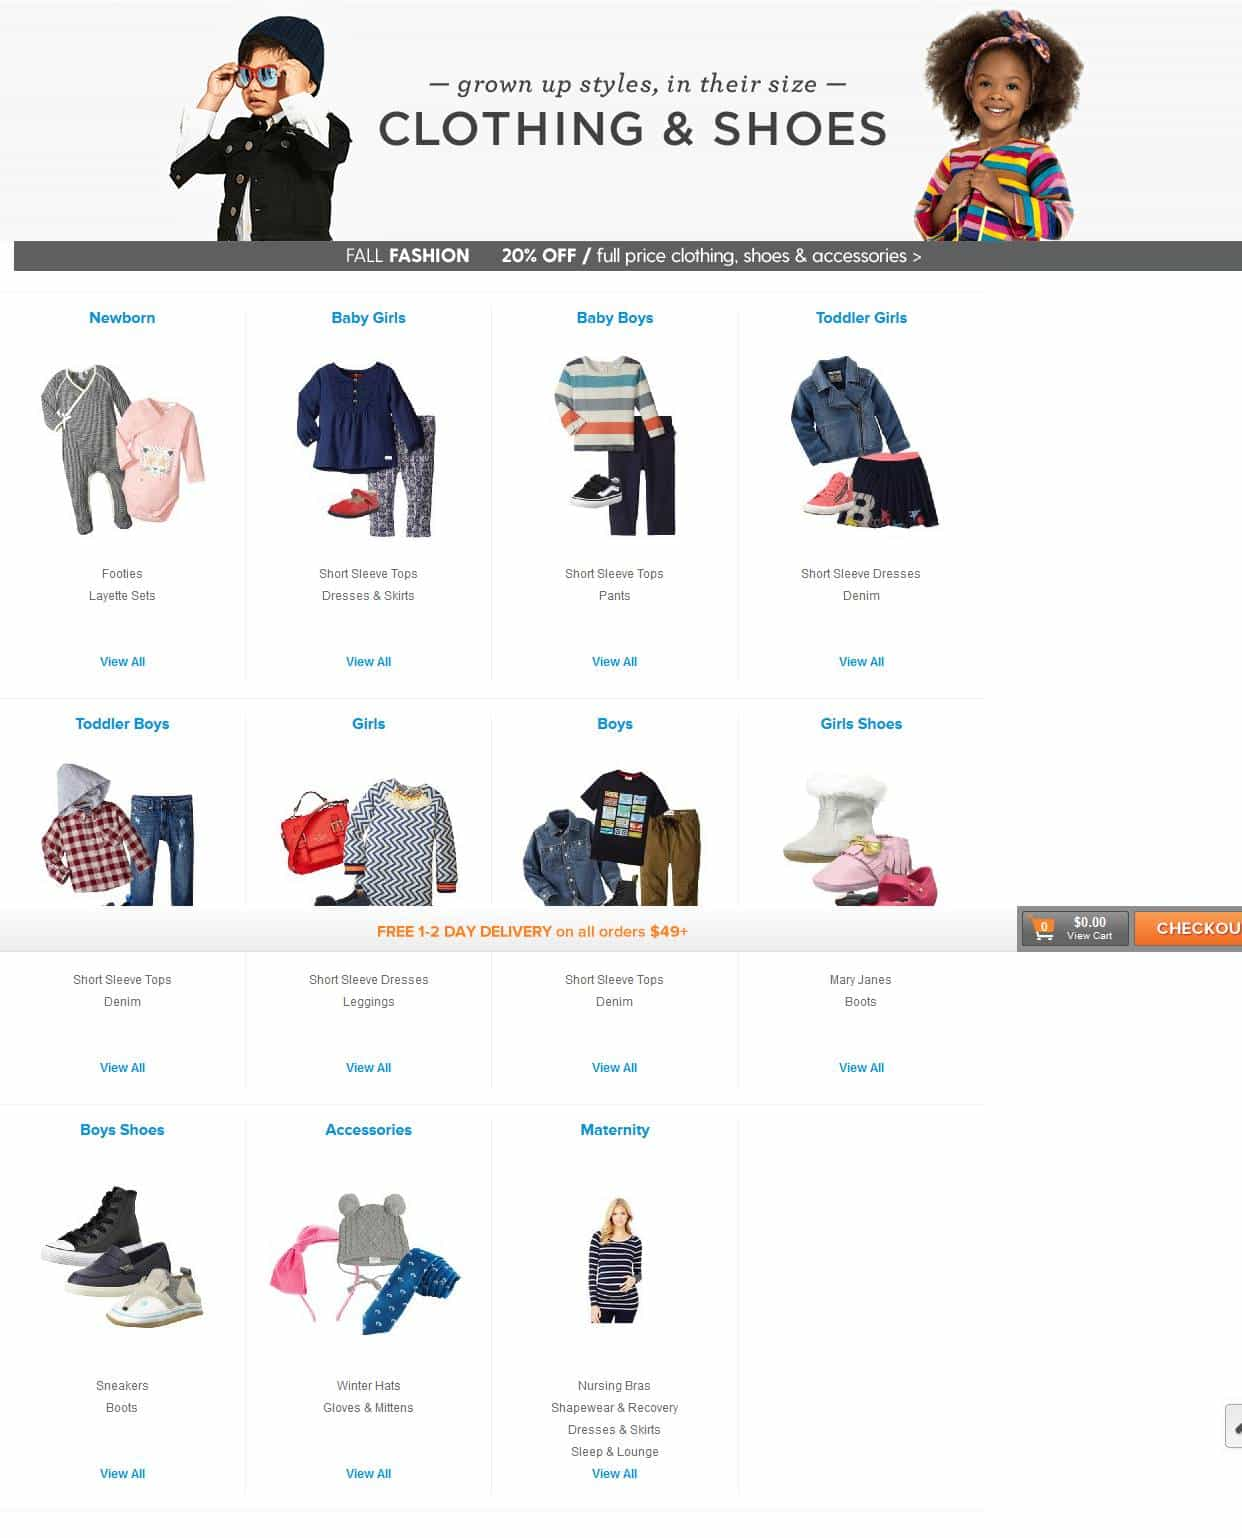 baby_clothing_diapers-com_-_2016-09-20_08-01-21